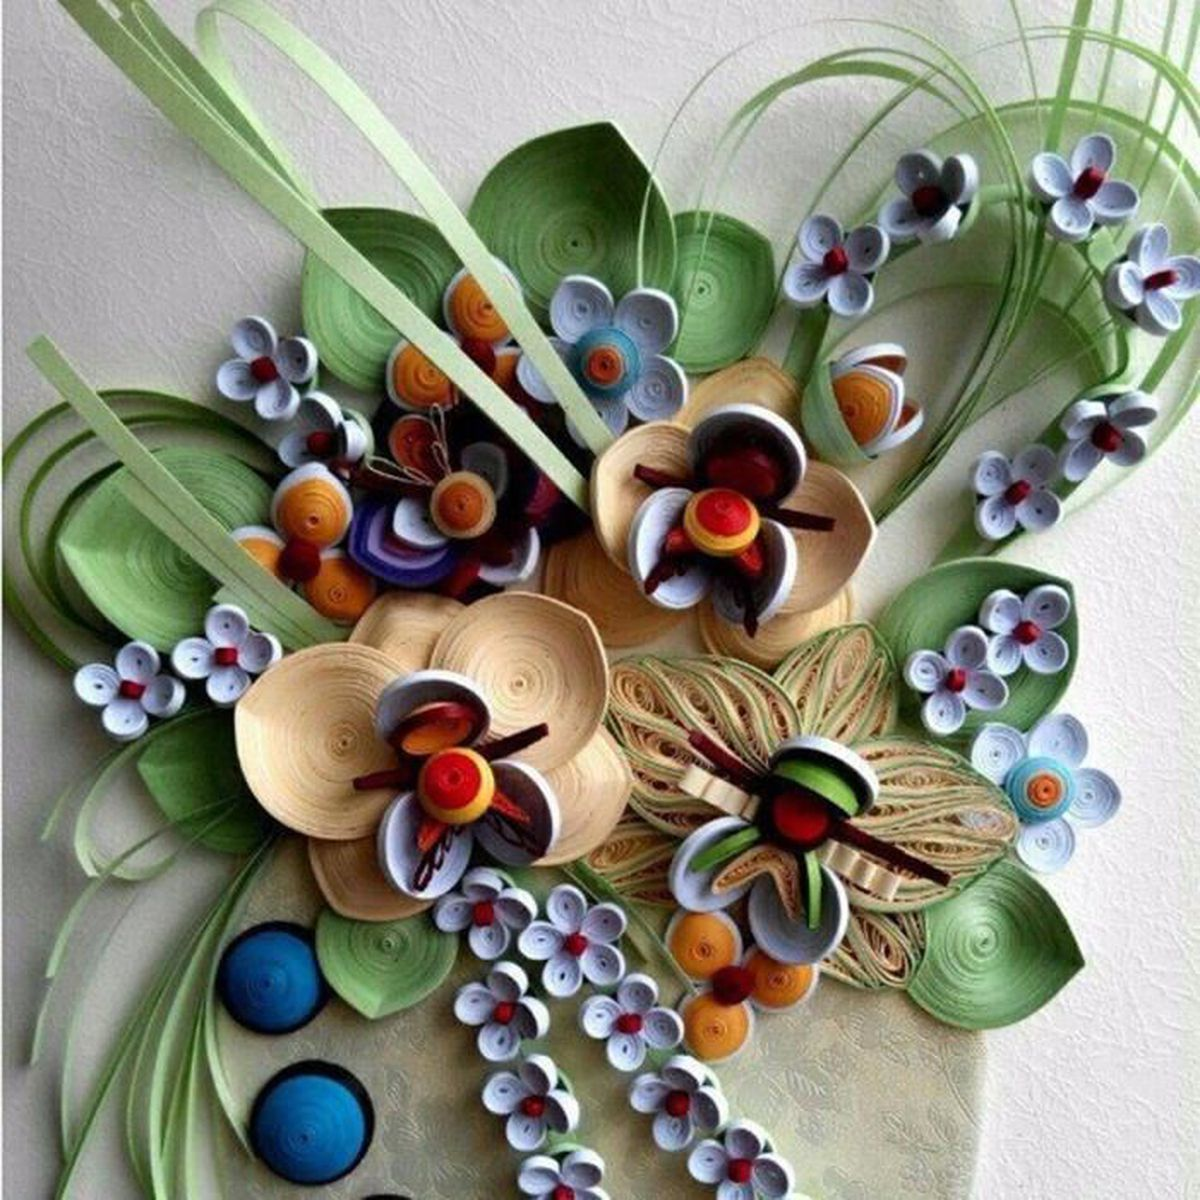 Outil Quilling Diy Scrapbooking Fournitures Quilled Création Bande